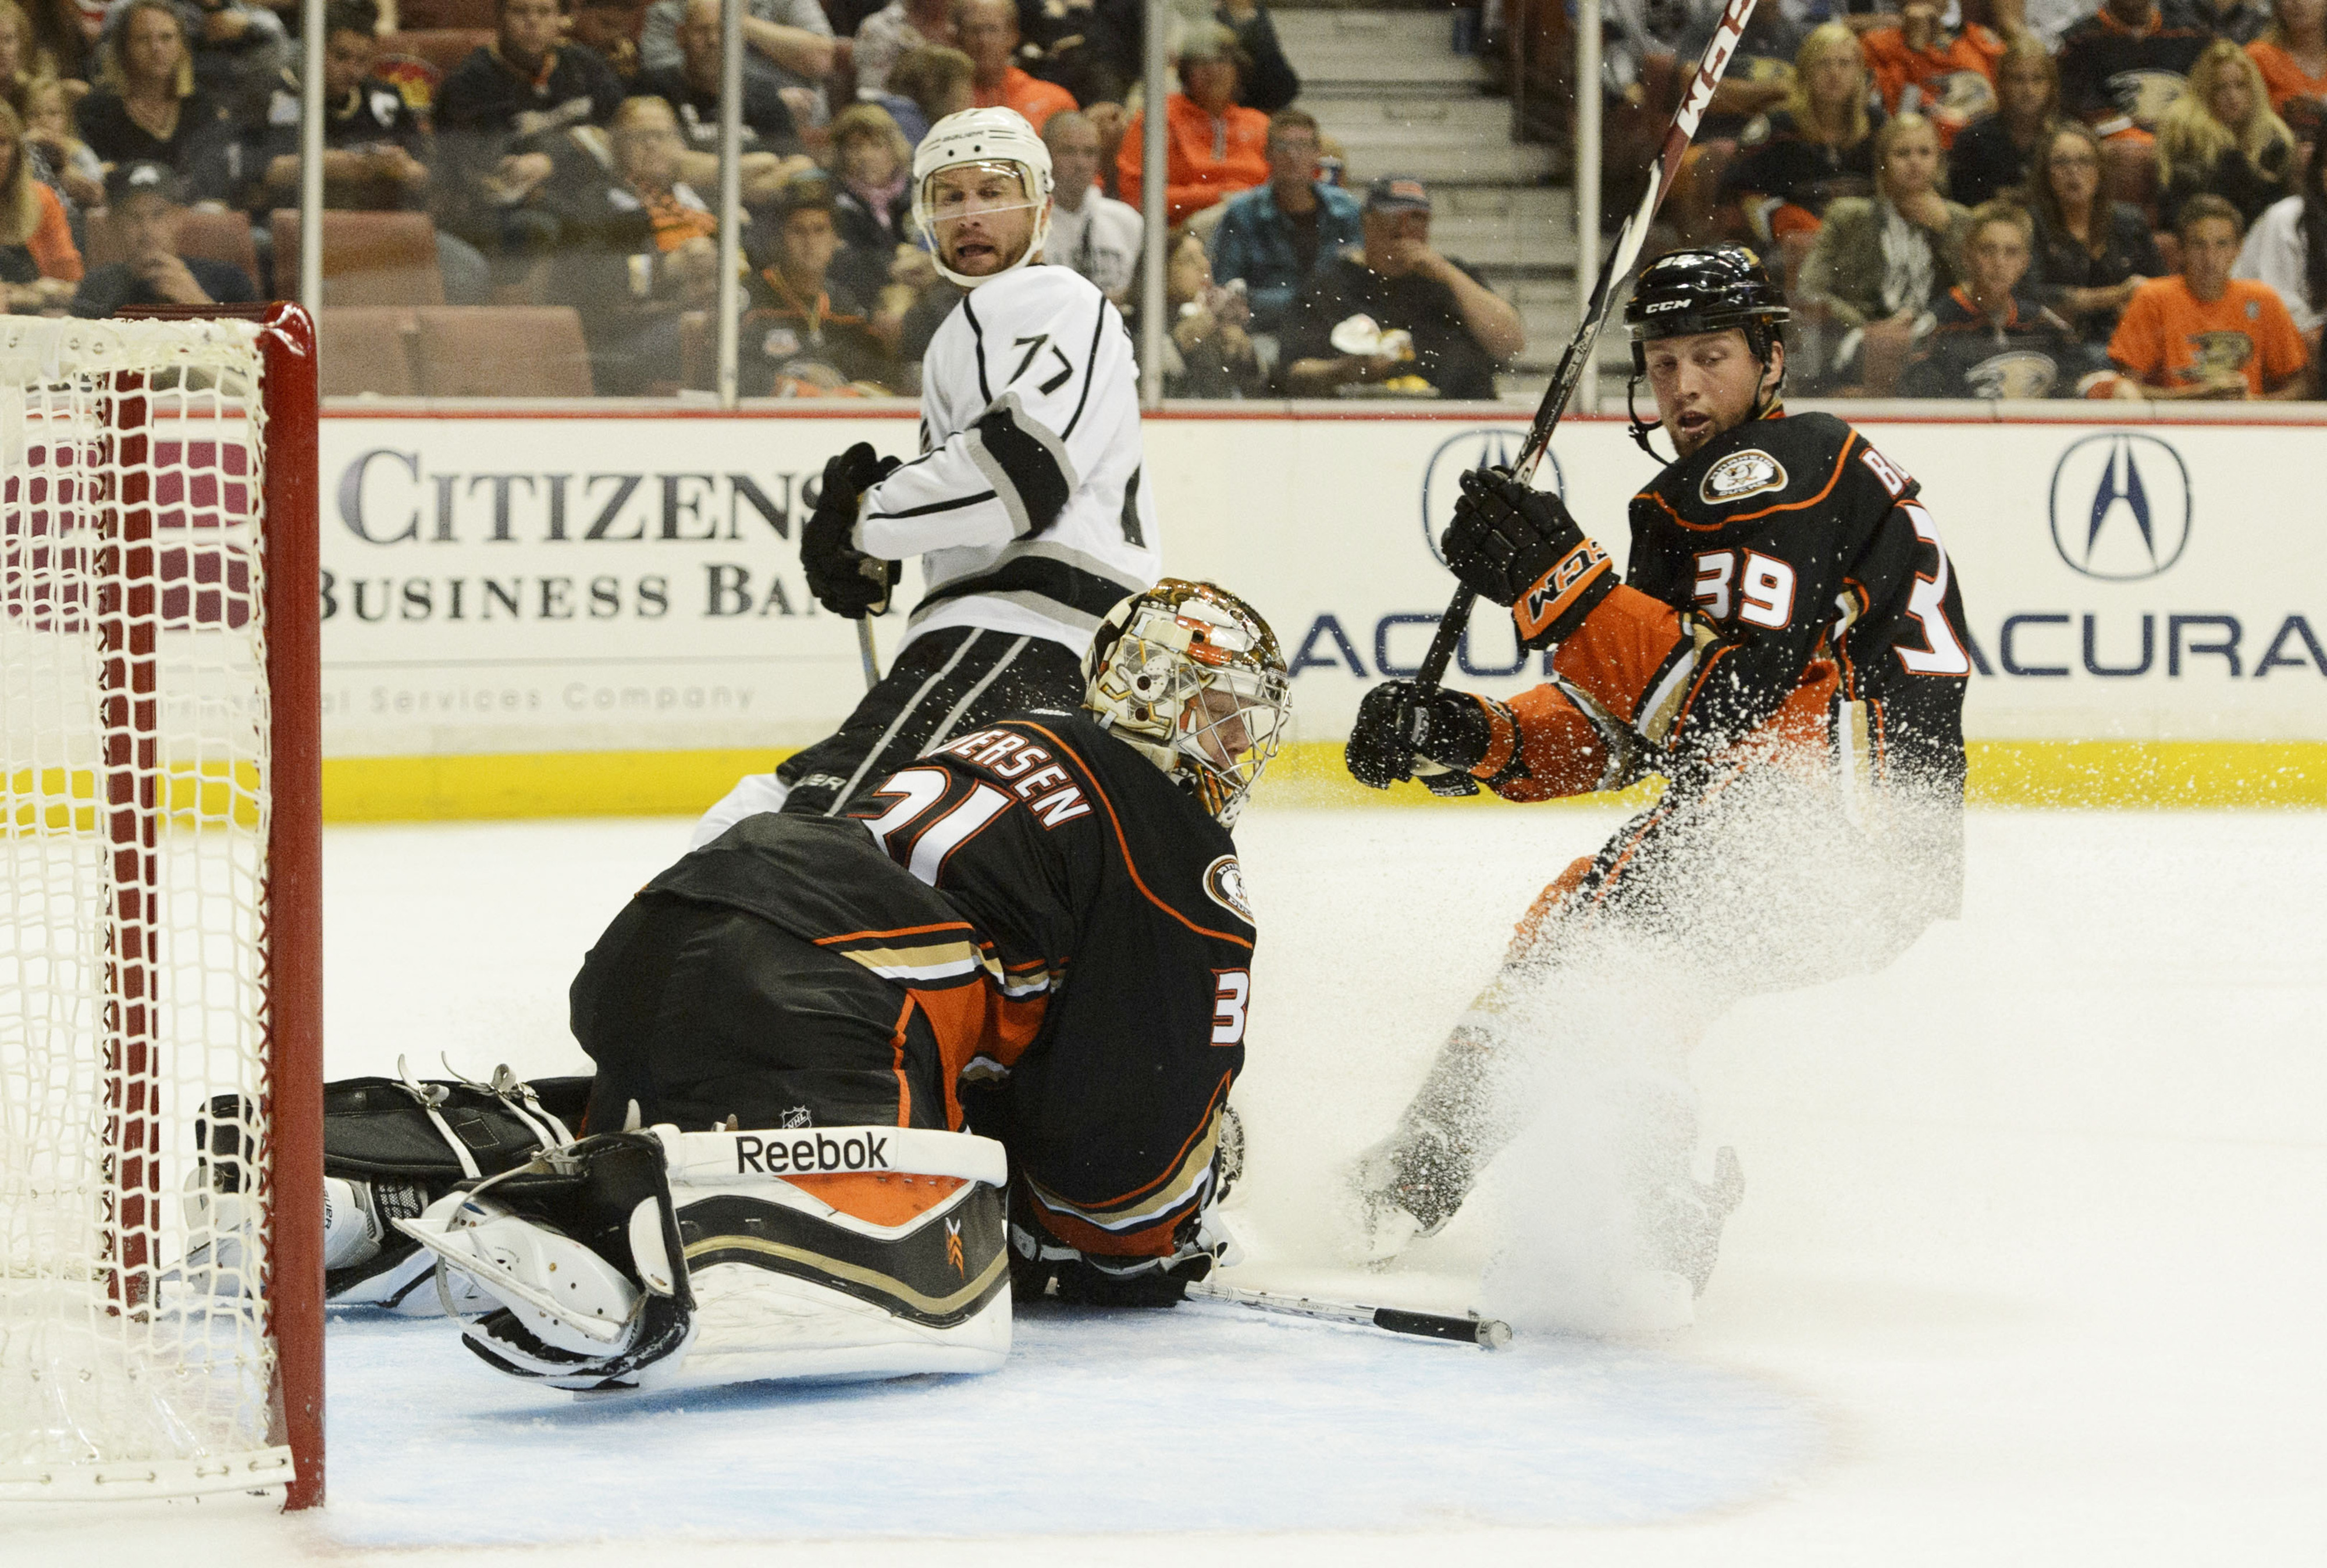 Jeff Carter drove the LA offense, picking up his first three goals of the preseason.